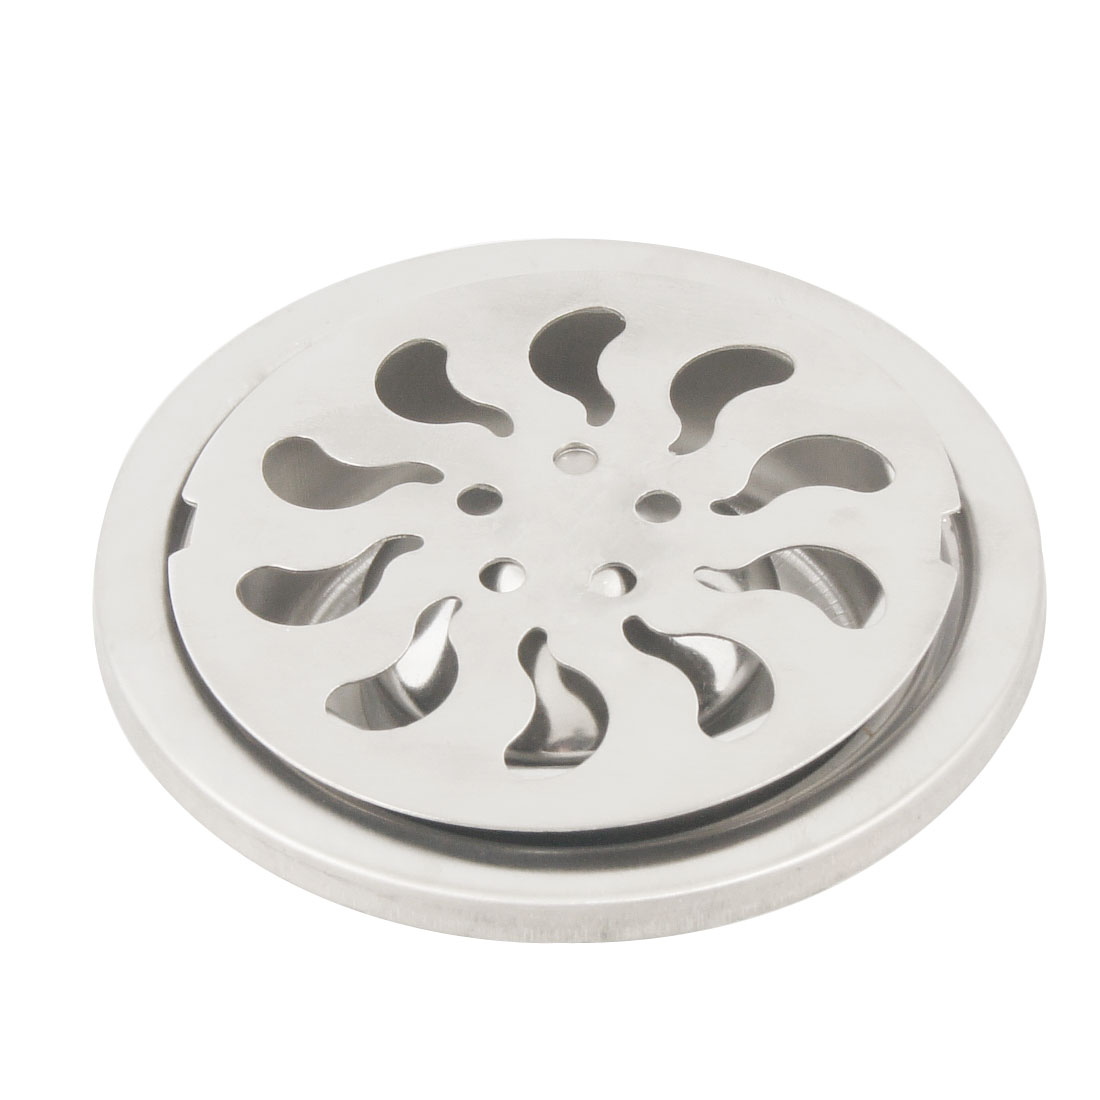 "Bathroom 3"" Silver Tone Stainless Steel Round Sink Floor Drain"